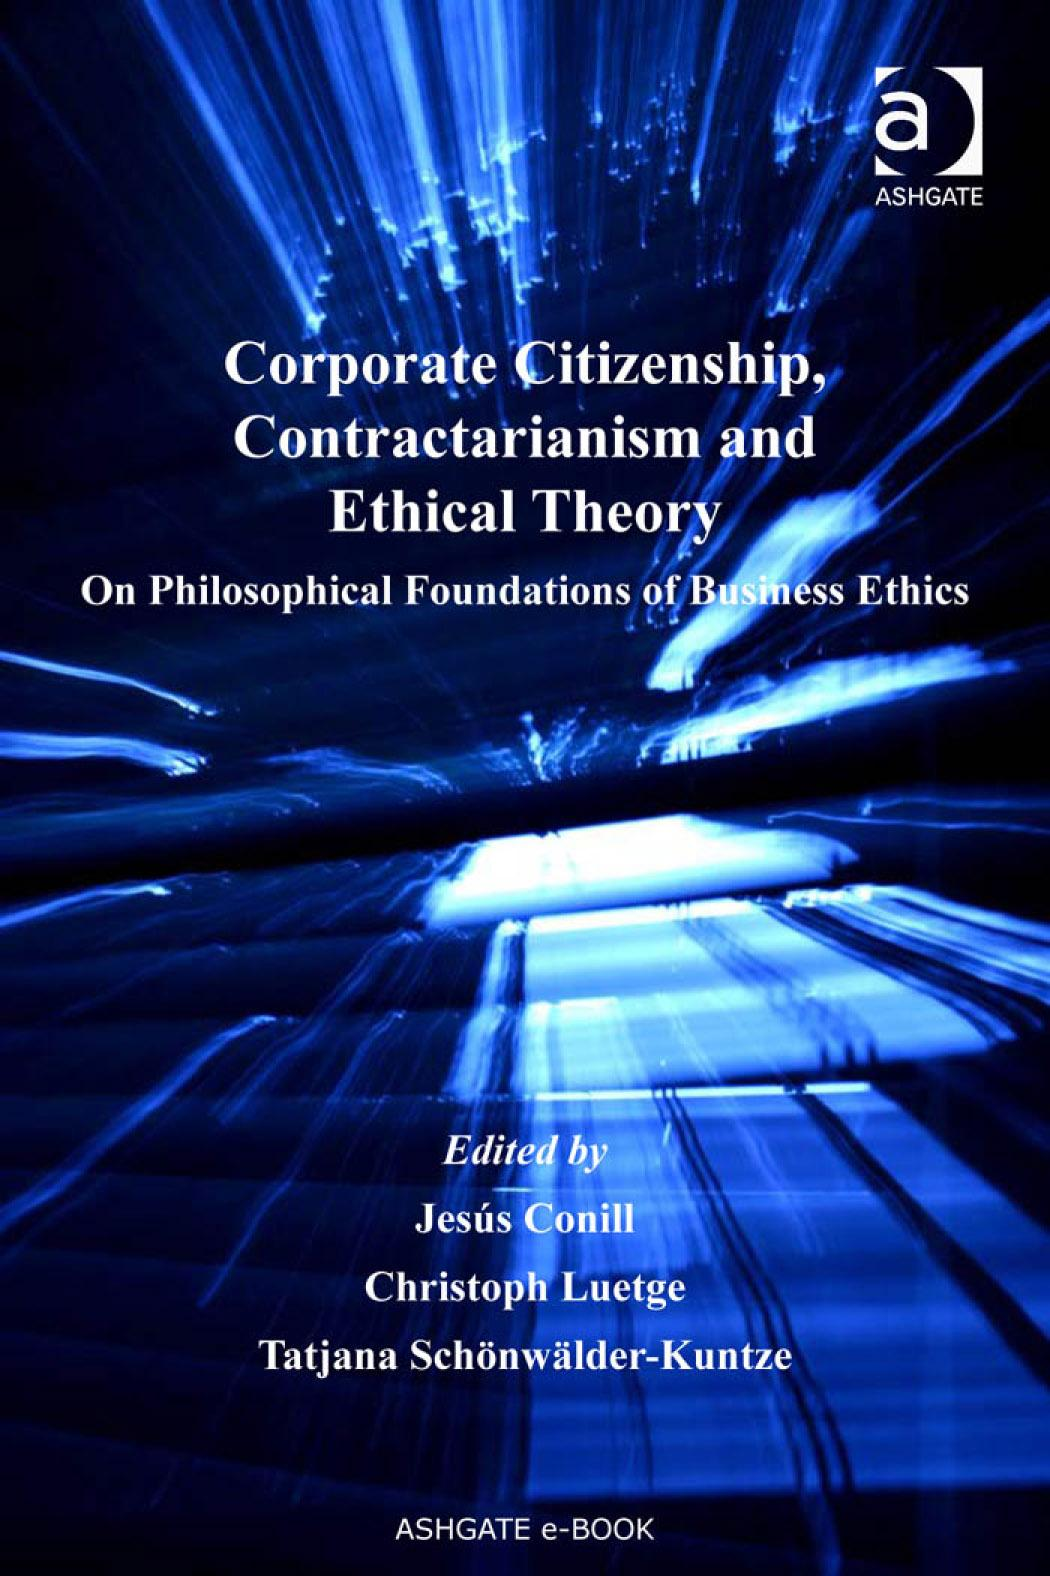 Corporate Citizenship, Contractarianism and Ethical Theory: On Philosophical Foundations of Business Ethics Law, Ethics and Economics EB9780754693222